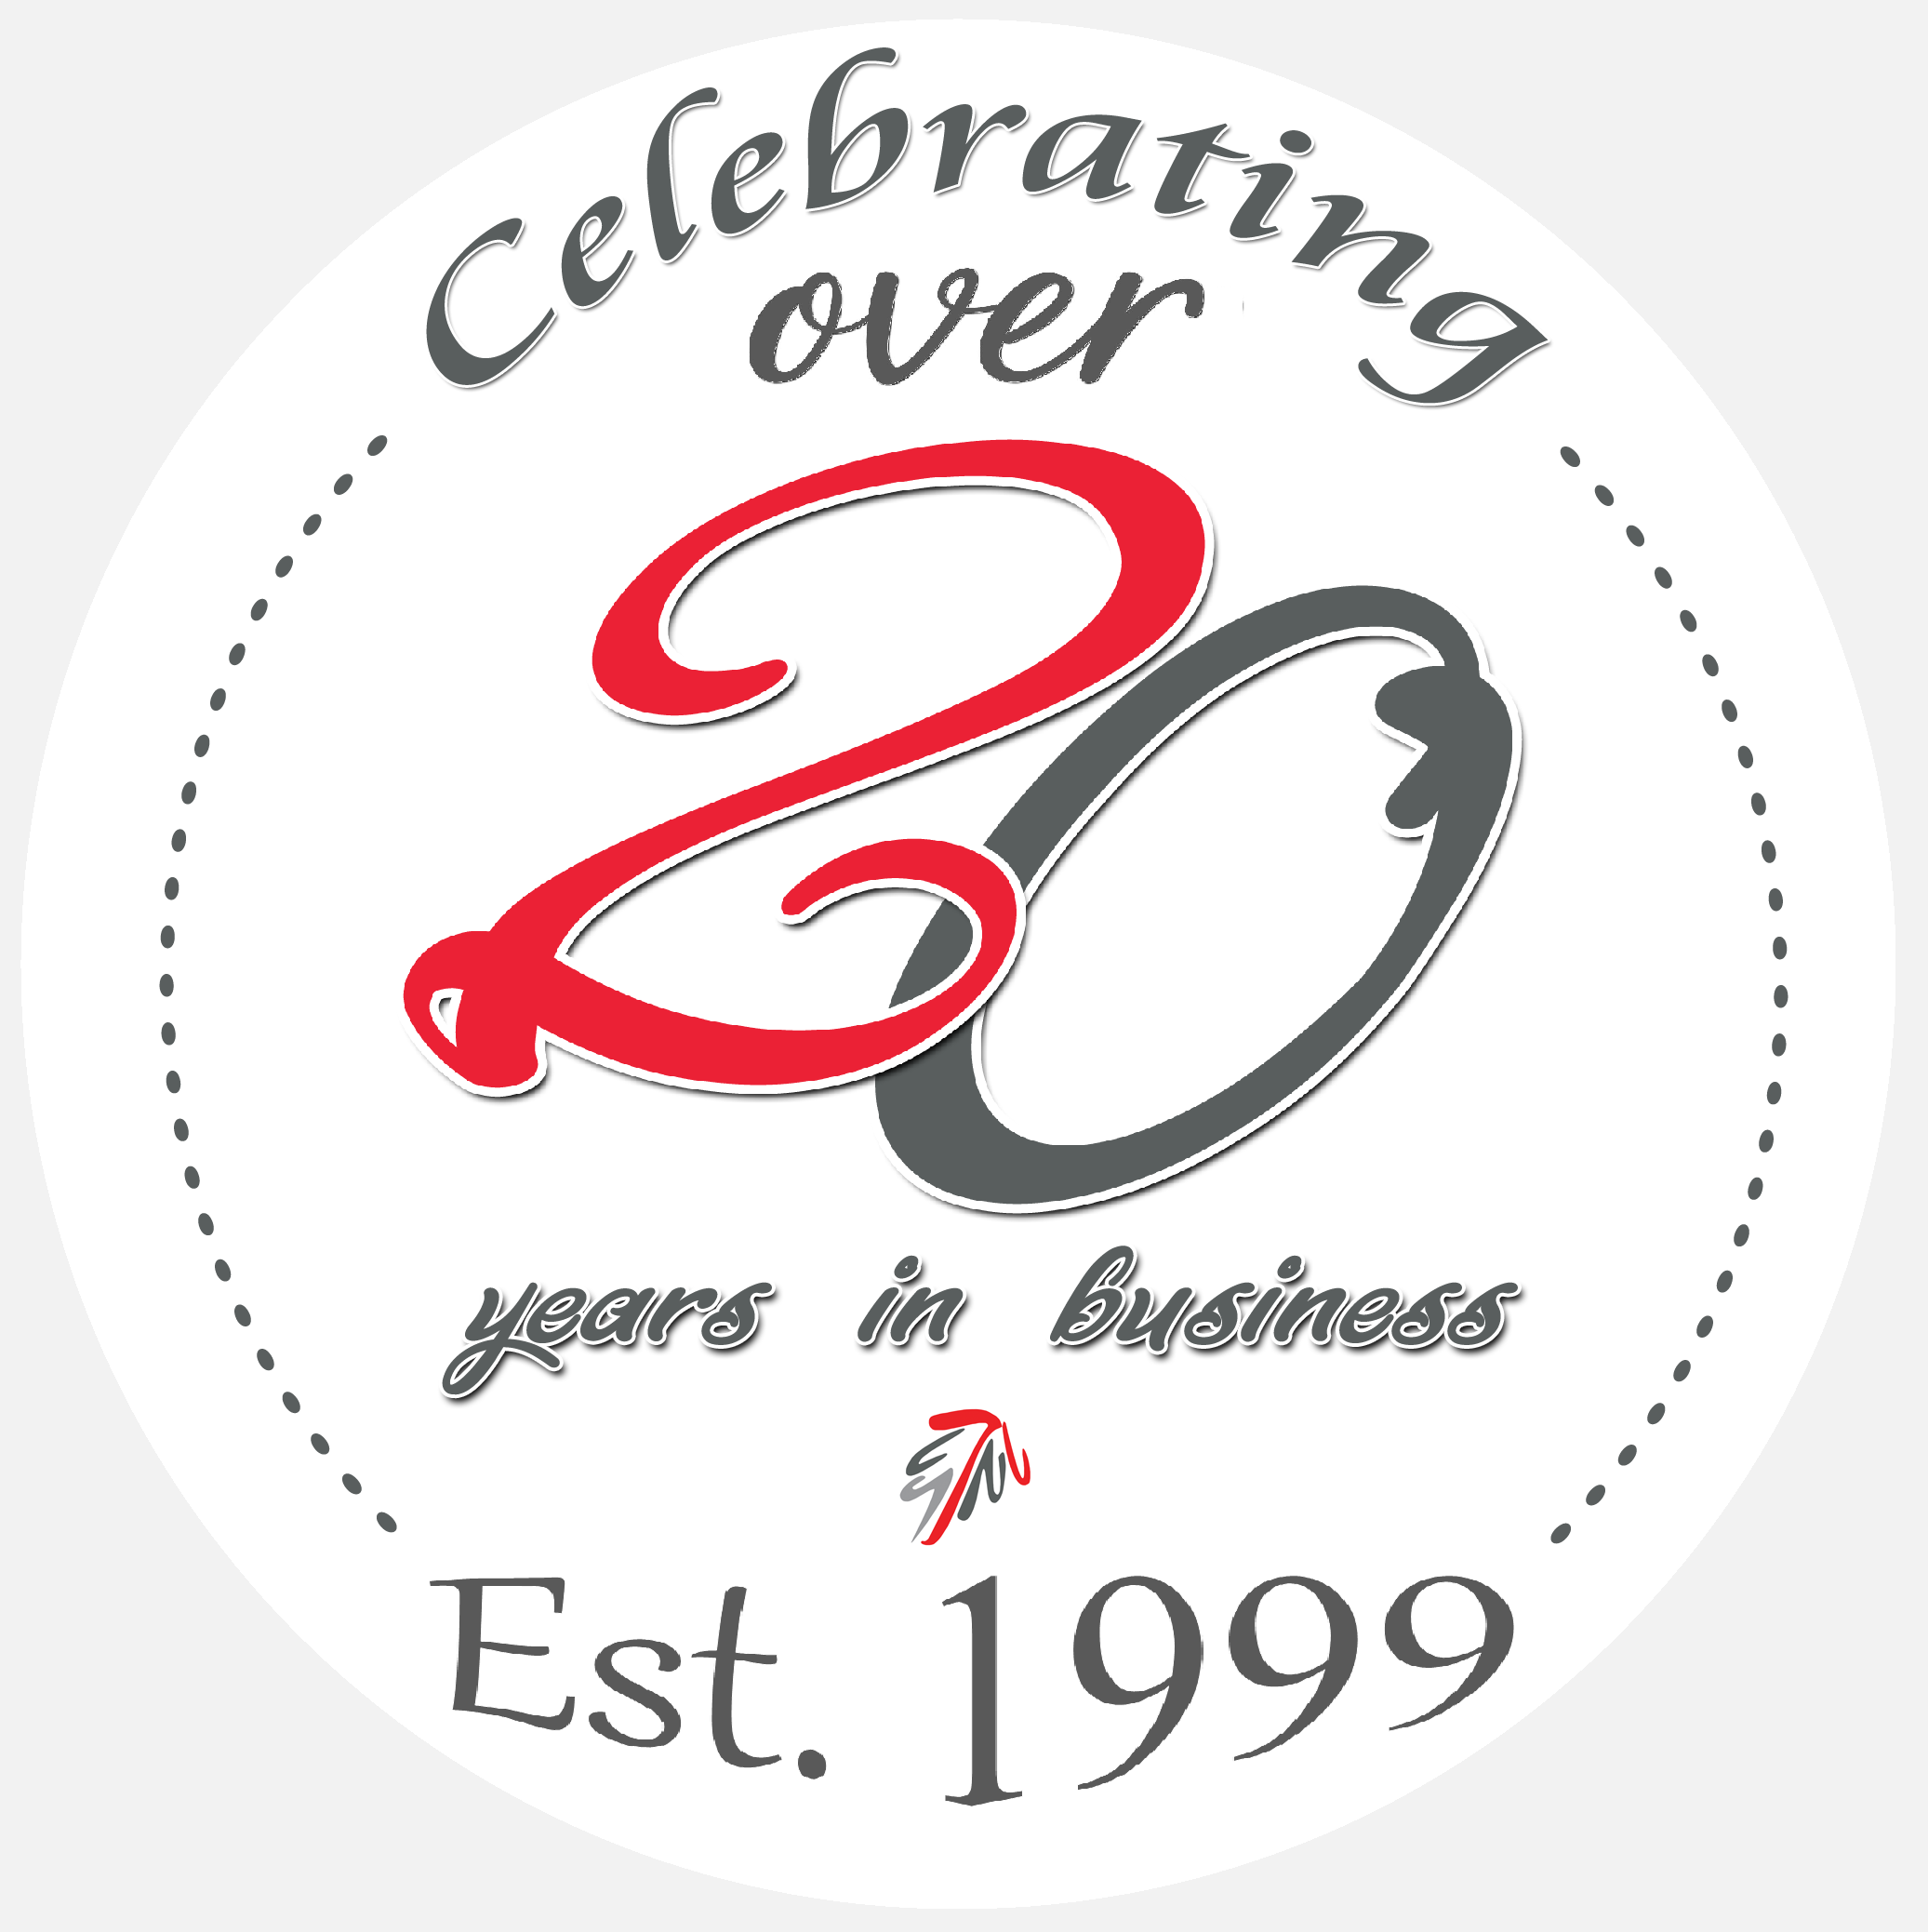 Celebrating over 20 Years of Landscape Service